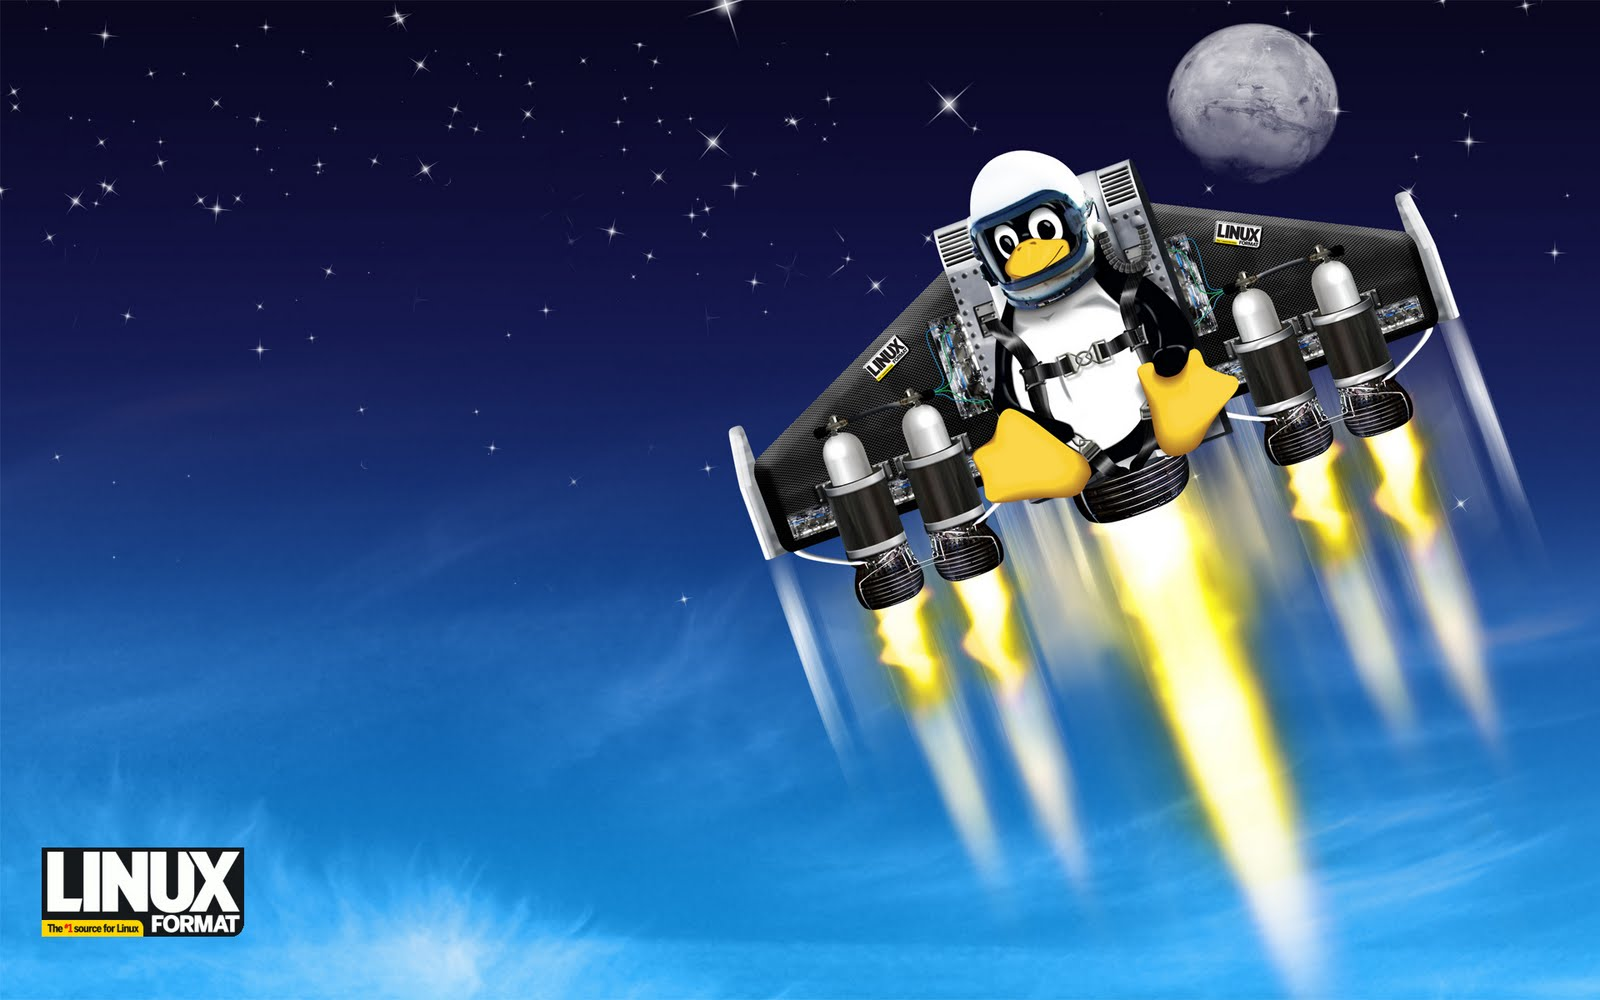 Linux Logo and HD Backgrounds Desktop Wallpapers 1600x1000